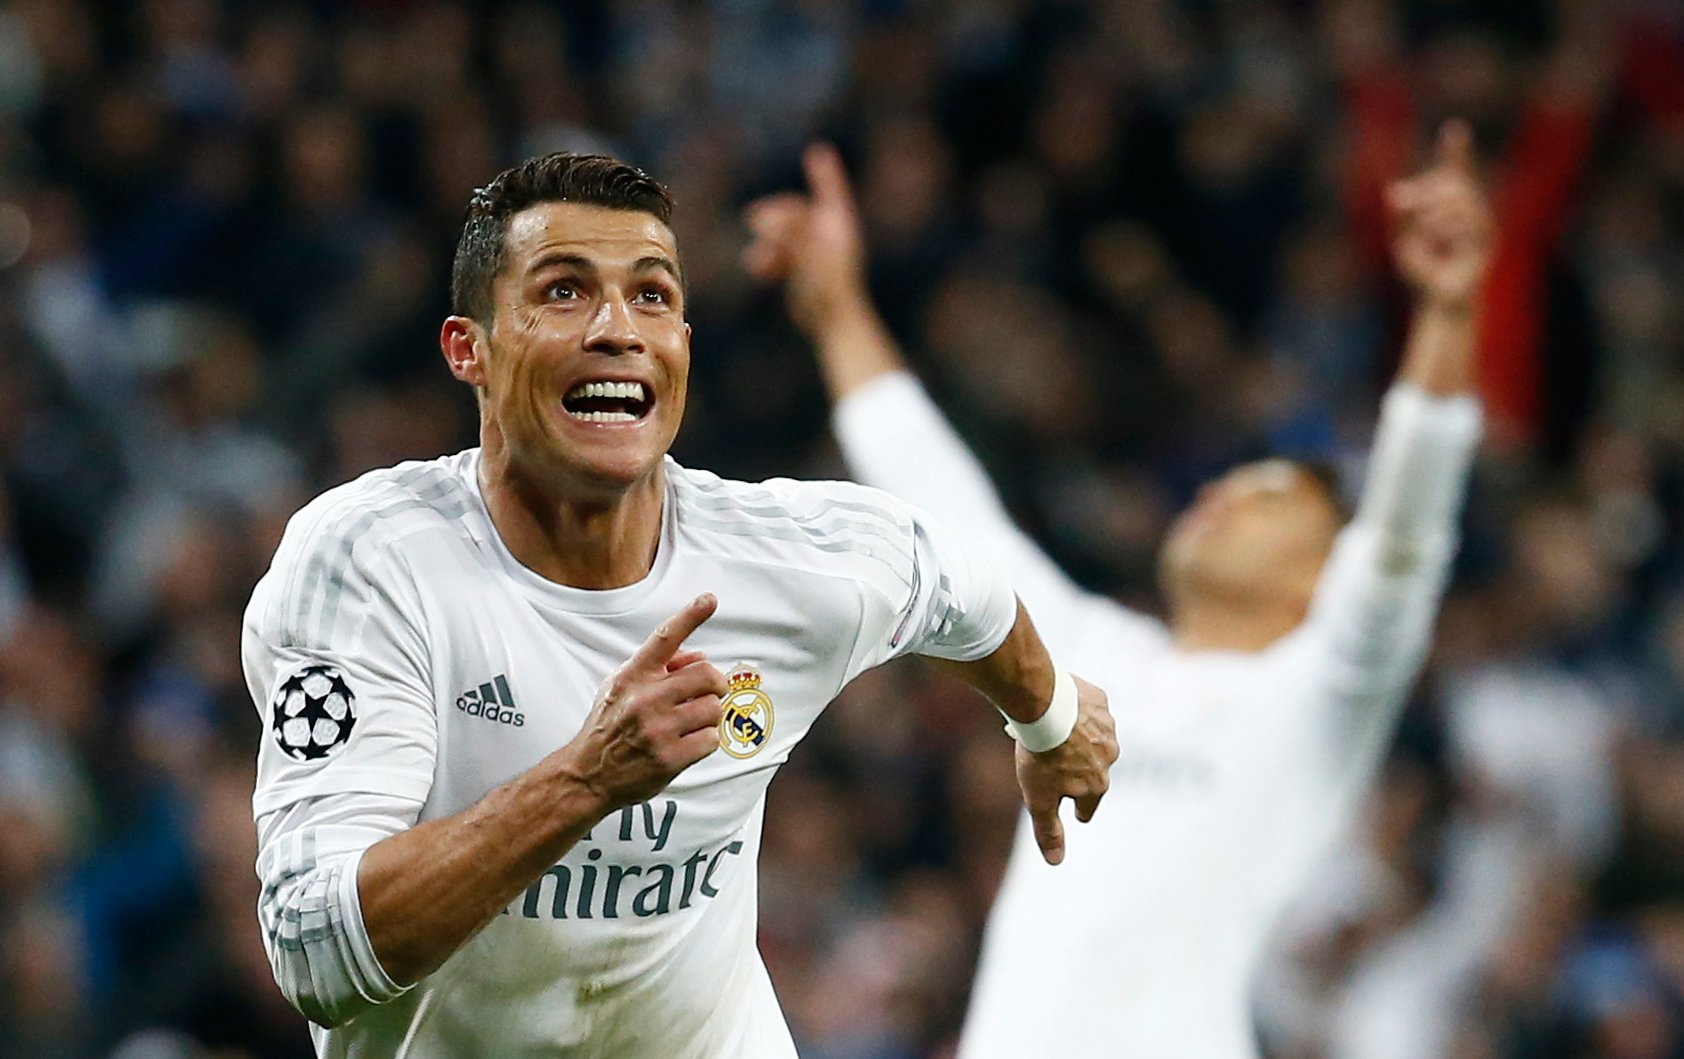 Real Madrid beats Malaga by 3-2 cristiano ronaldo scores well